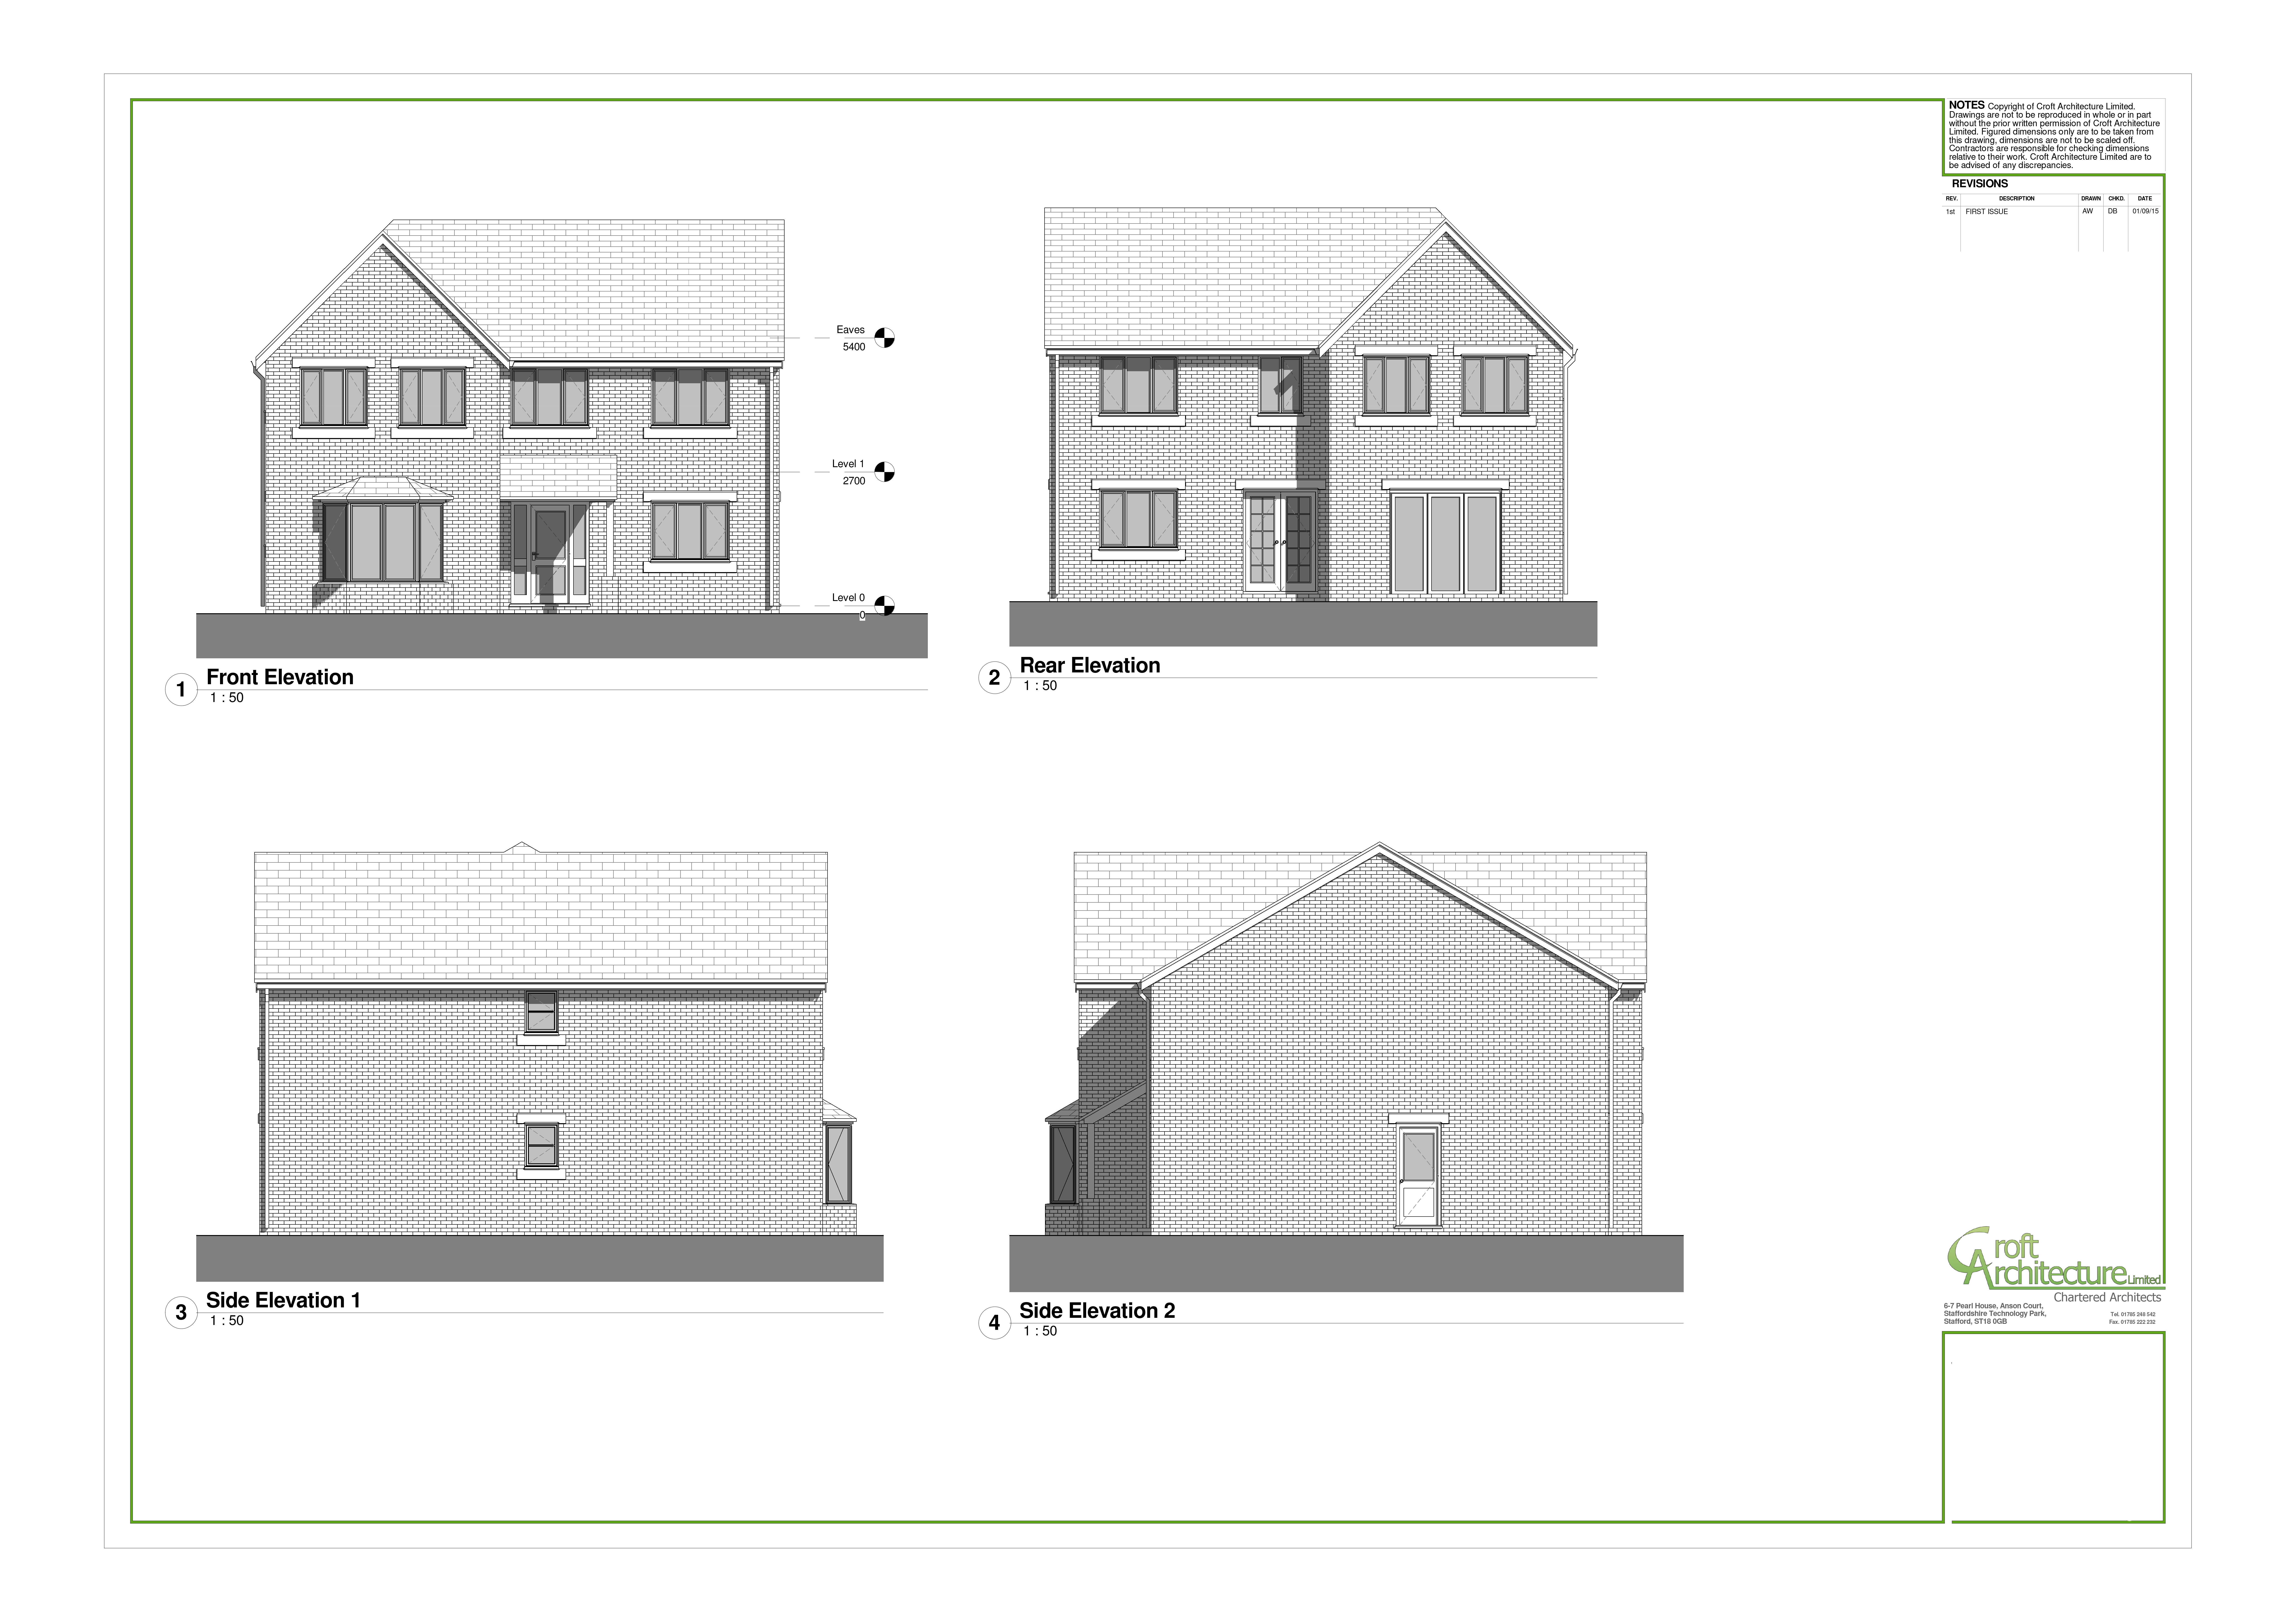 Croft Architecture House Type 3 Proposed Luxury Housing in Staffordshire